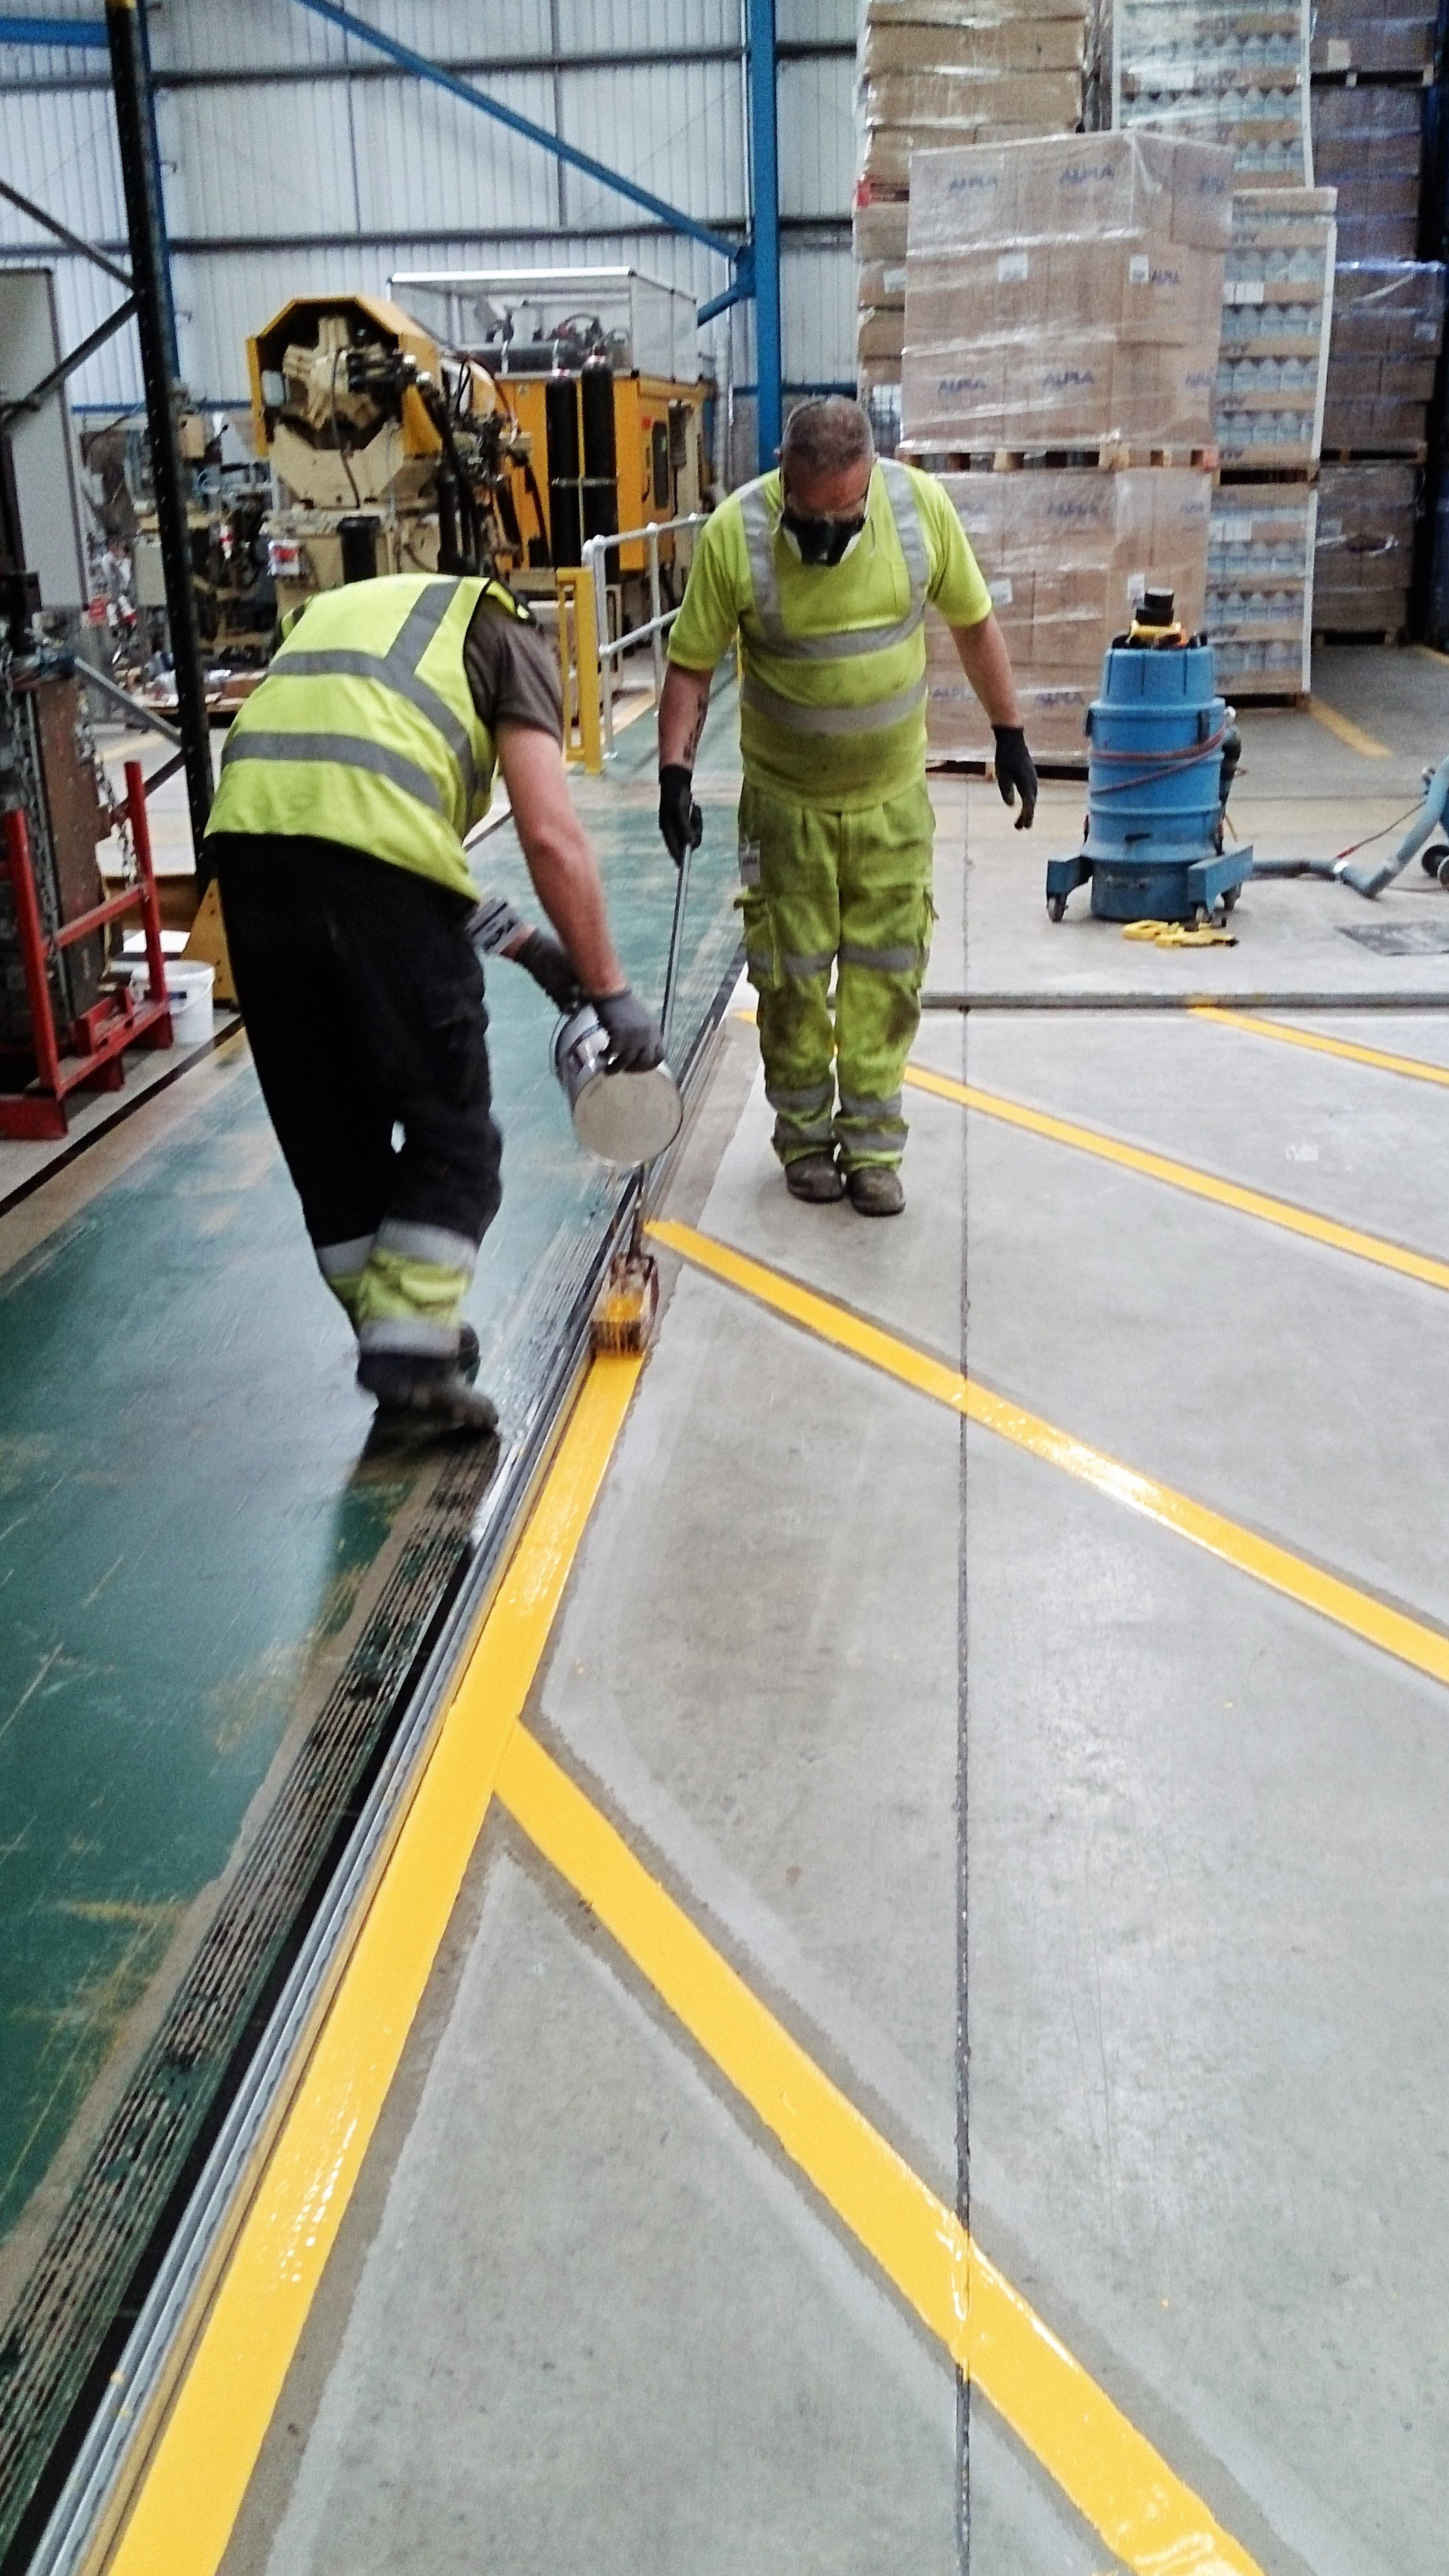 yellow line marking being applied at a warehouse indoors